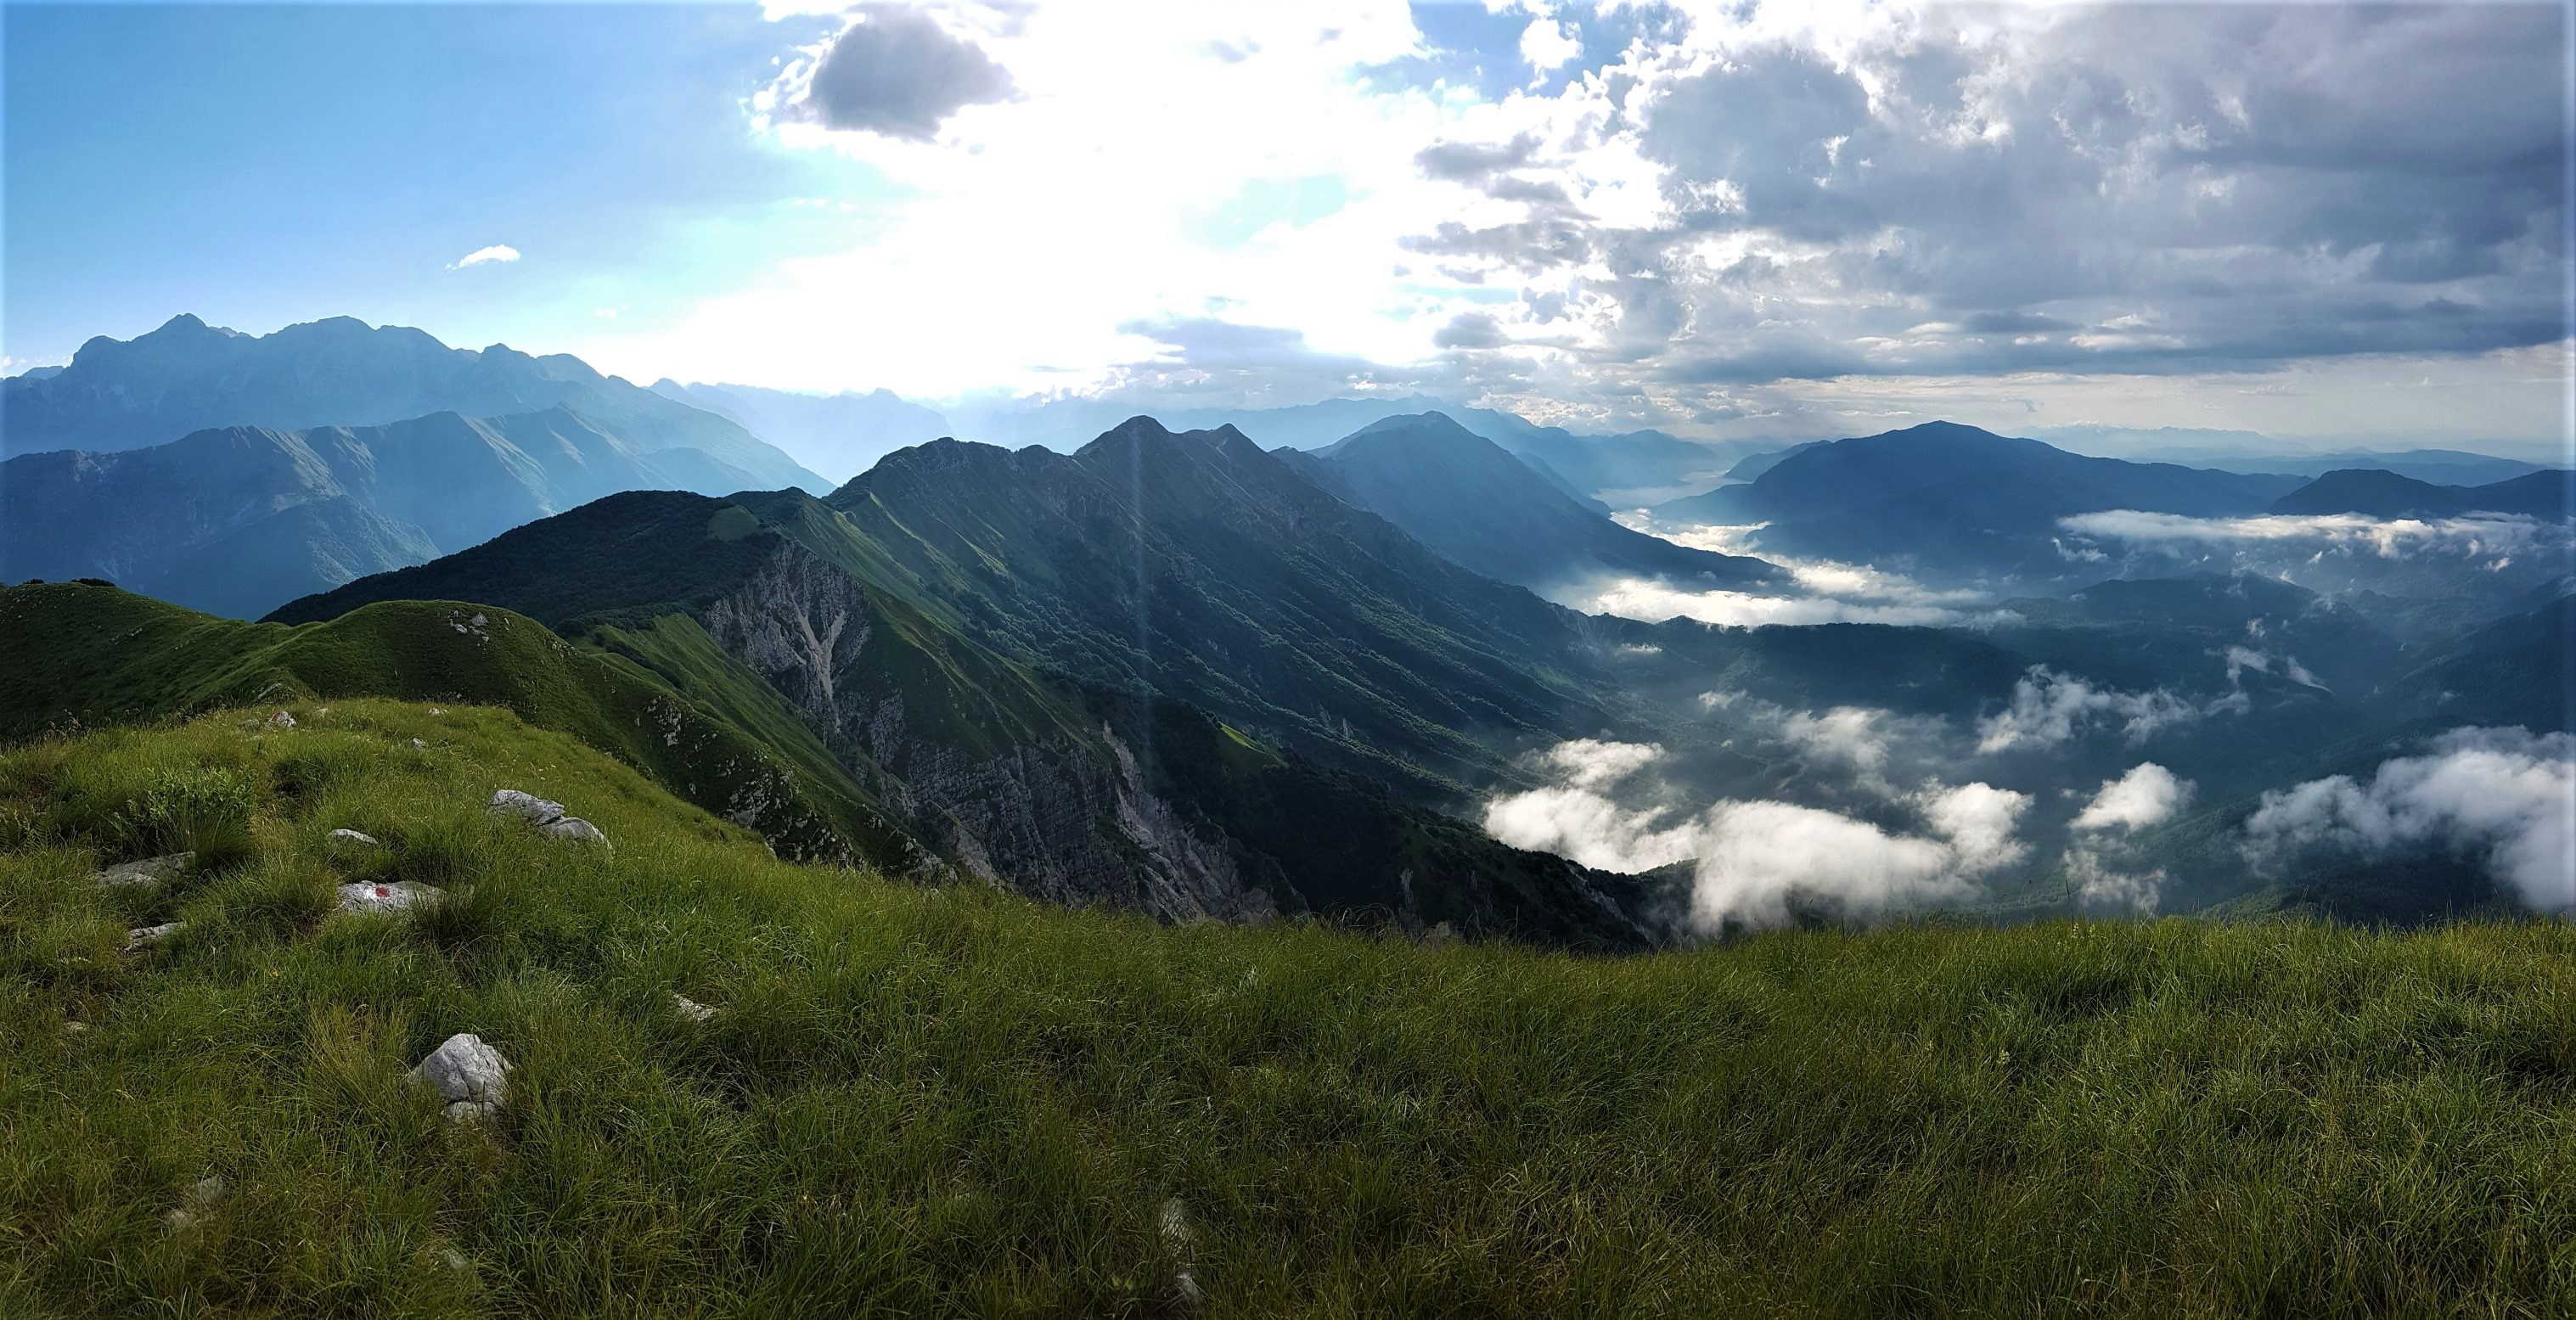 The peak of my photographic career.  Looking back along the Stol ridge towards Slovenia from Italy